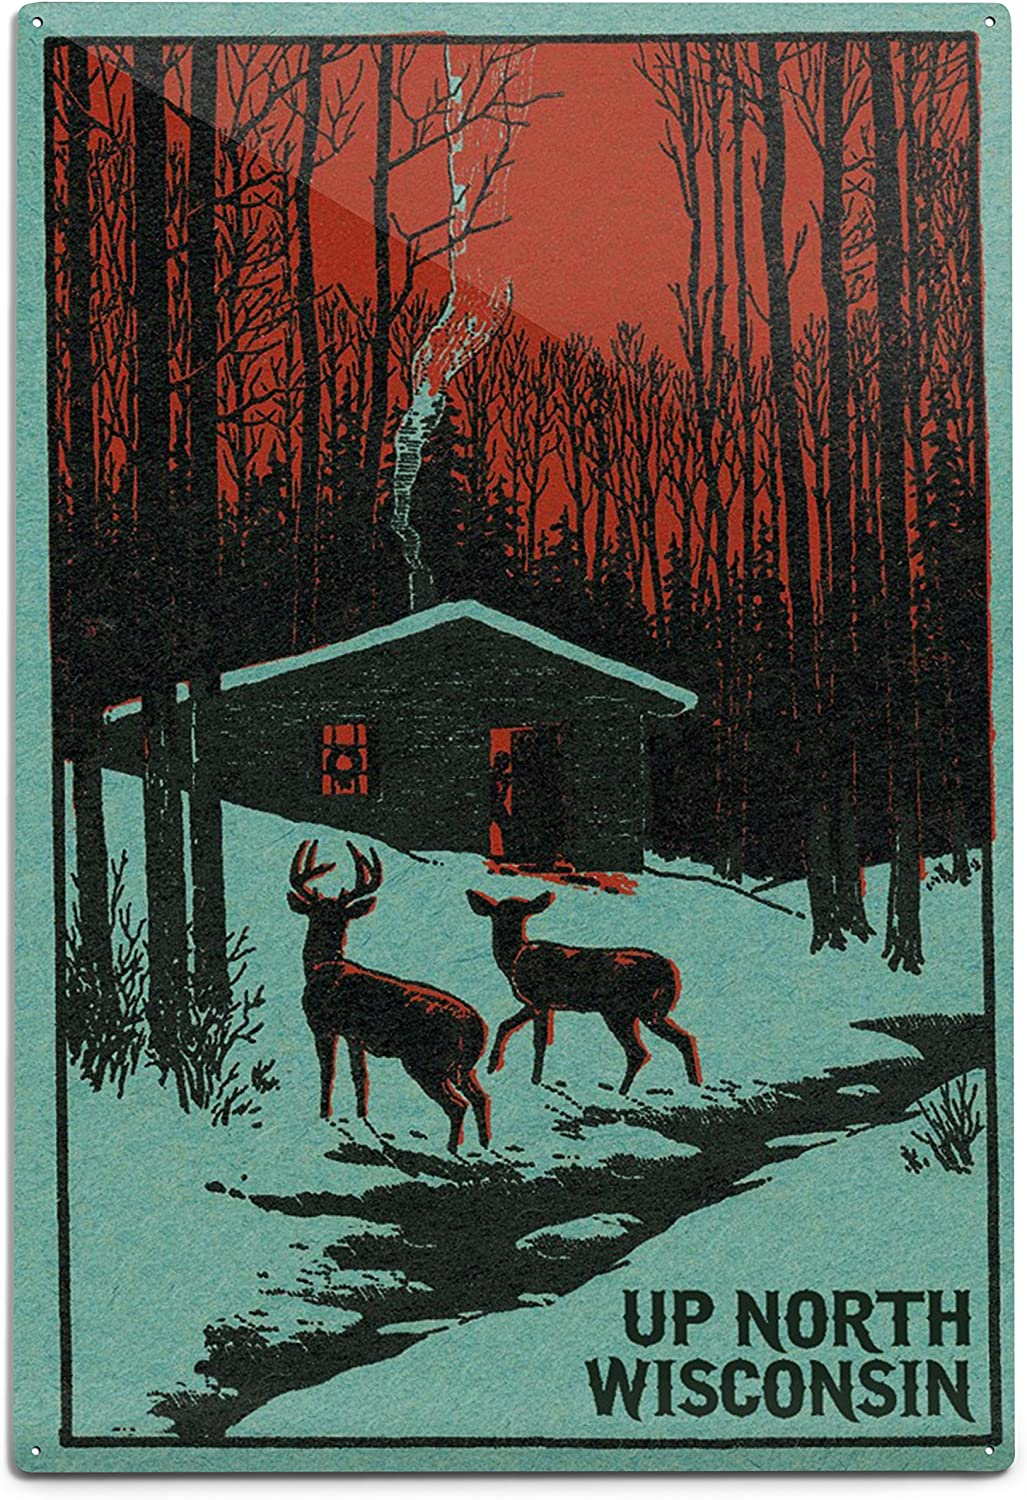 Up North Wisconsin Deer And Cabin In Winter Woodblock 9x12 Art Print Wall Decor Travel Poster Posters Prints